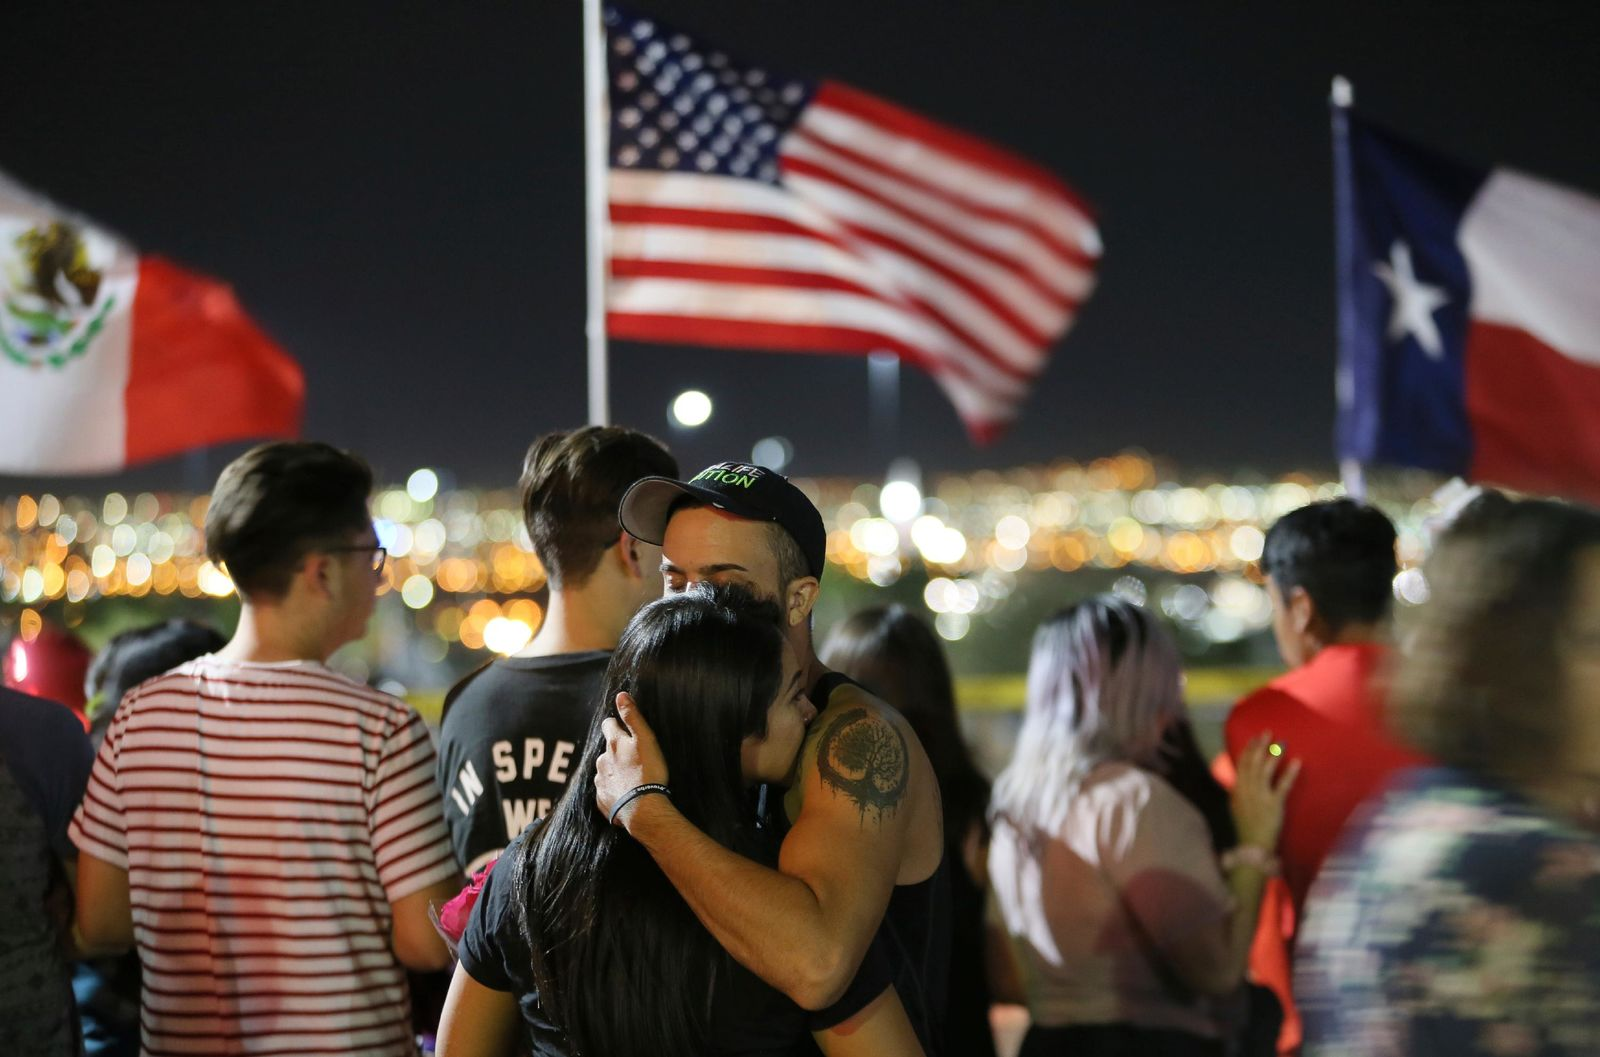 People visit the memorial outside Walmart in El Paso, Texas, where a mass shooting took place on Saturday, Monday, Aug. 5, 2019. (Mark Lambie/The El Paso Times via AP)